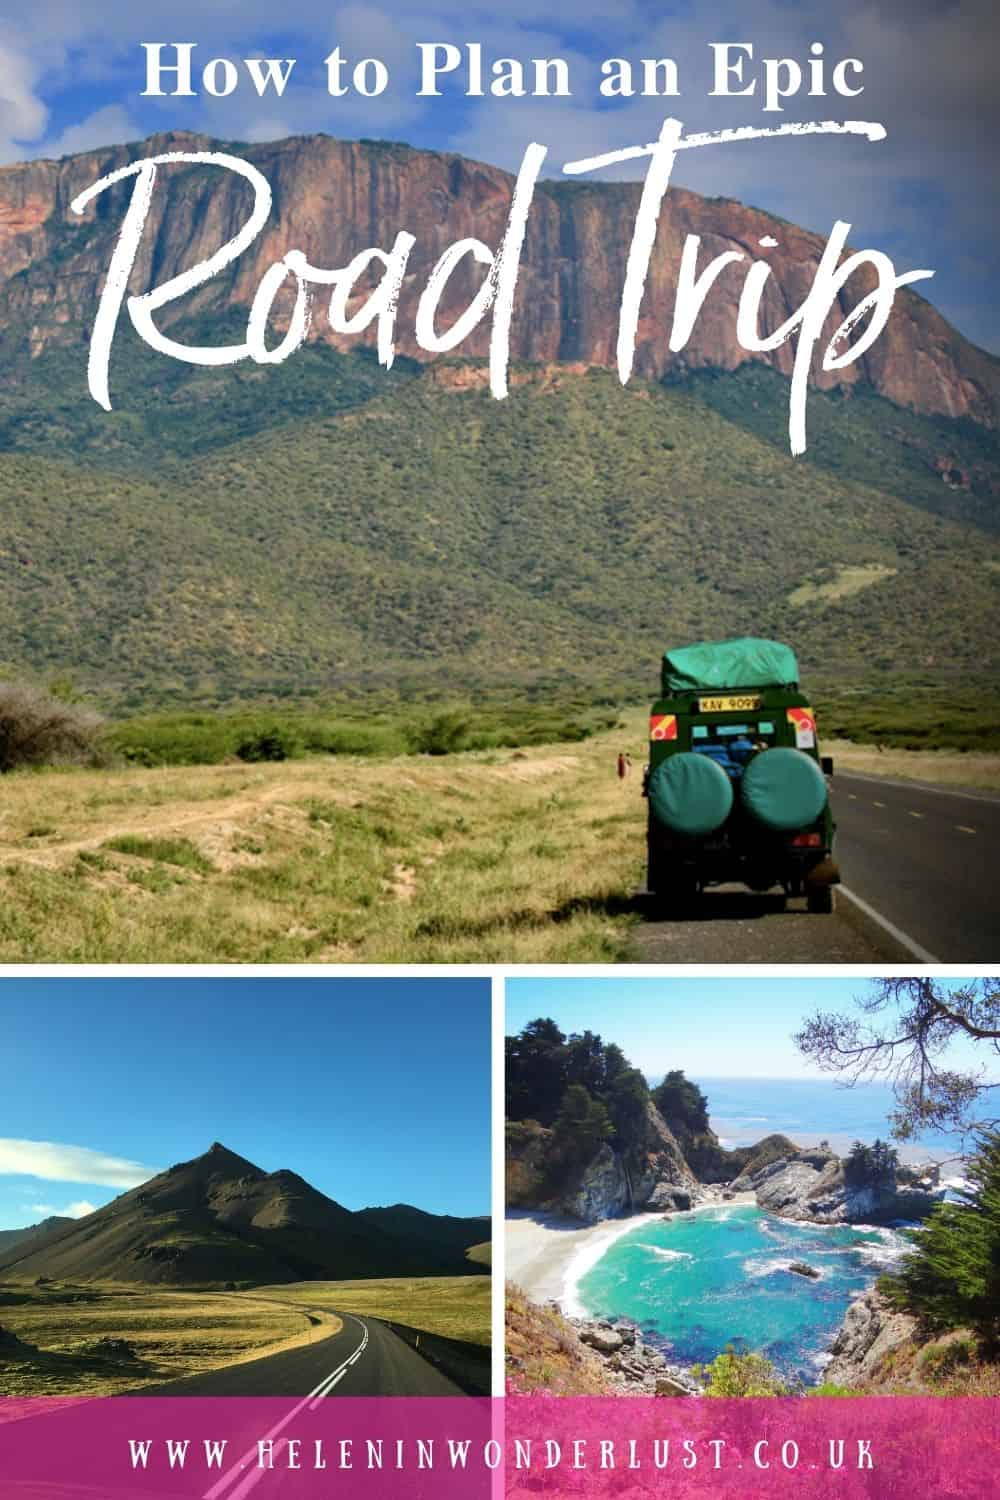 How To Plan an Epic Road Trip in 14 Easy Steps